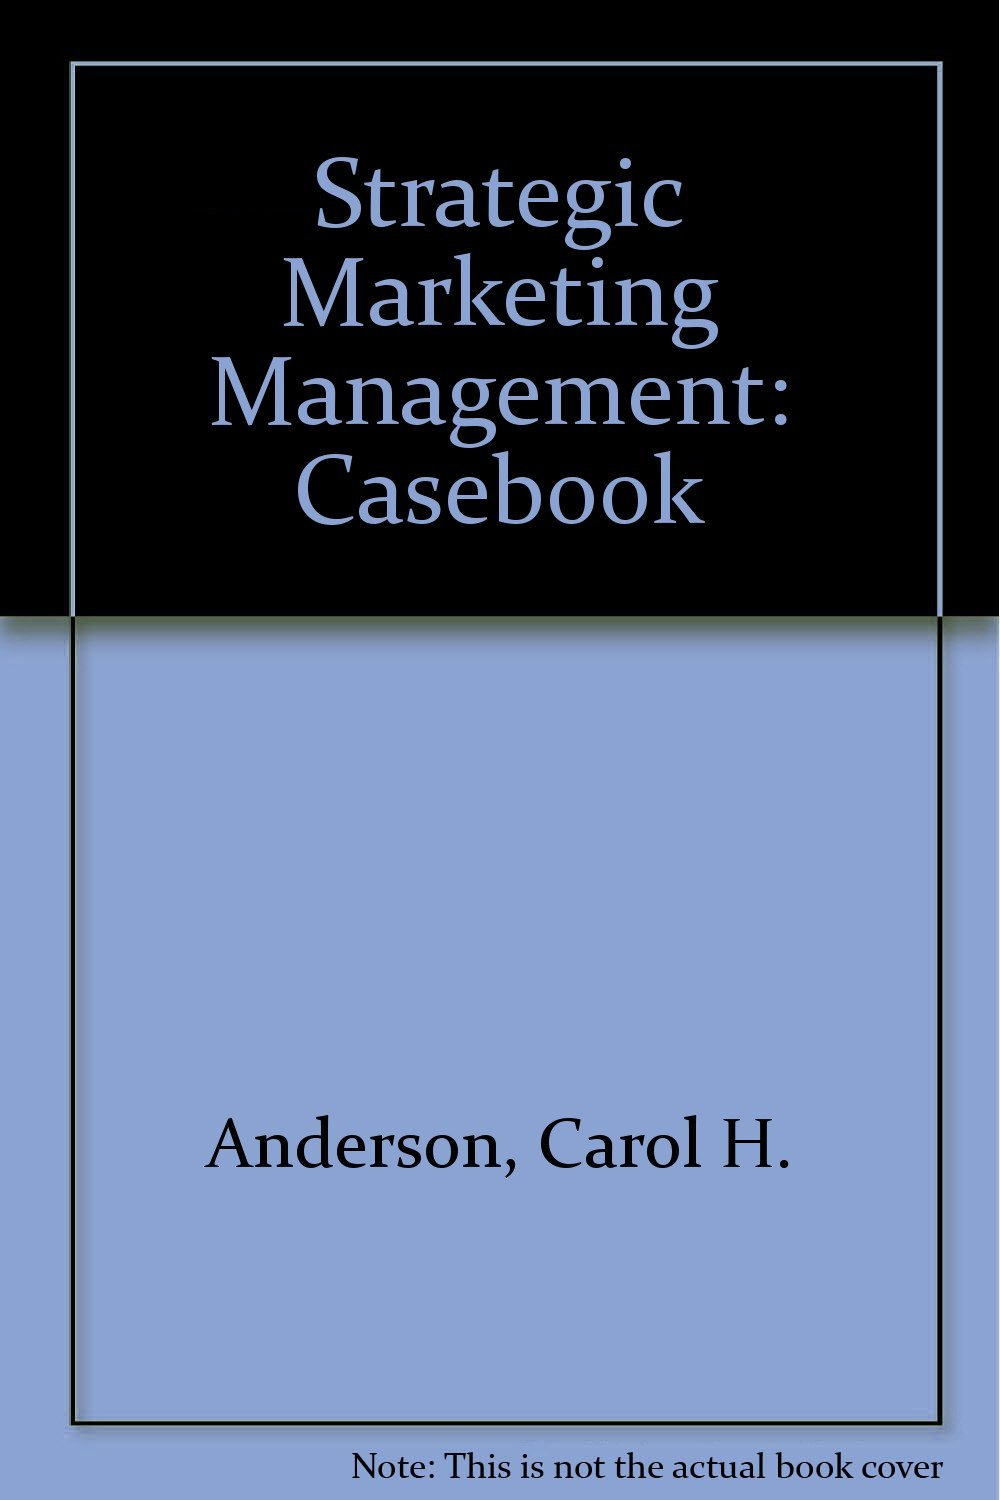 Strategic Marketing Management: Casebook